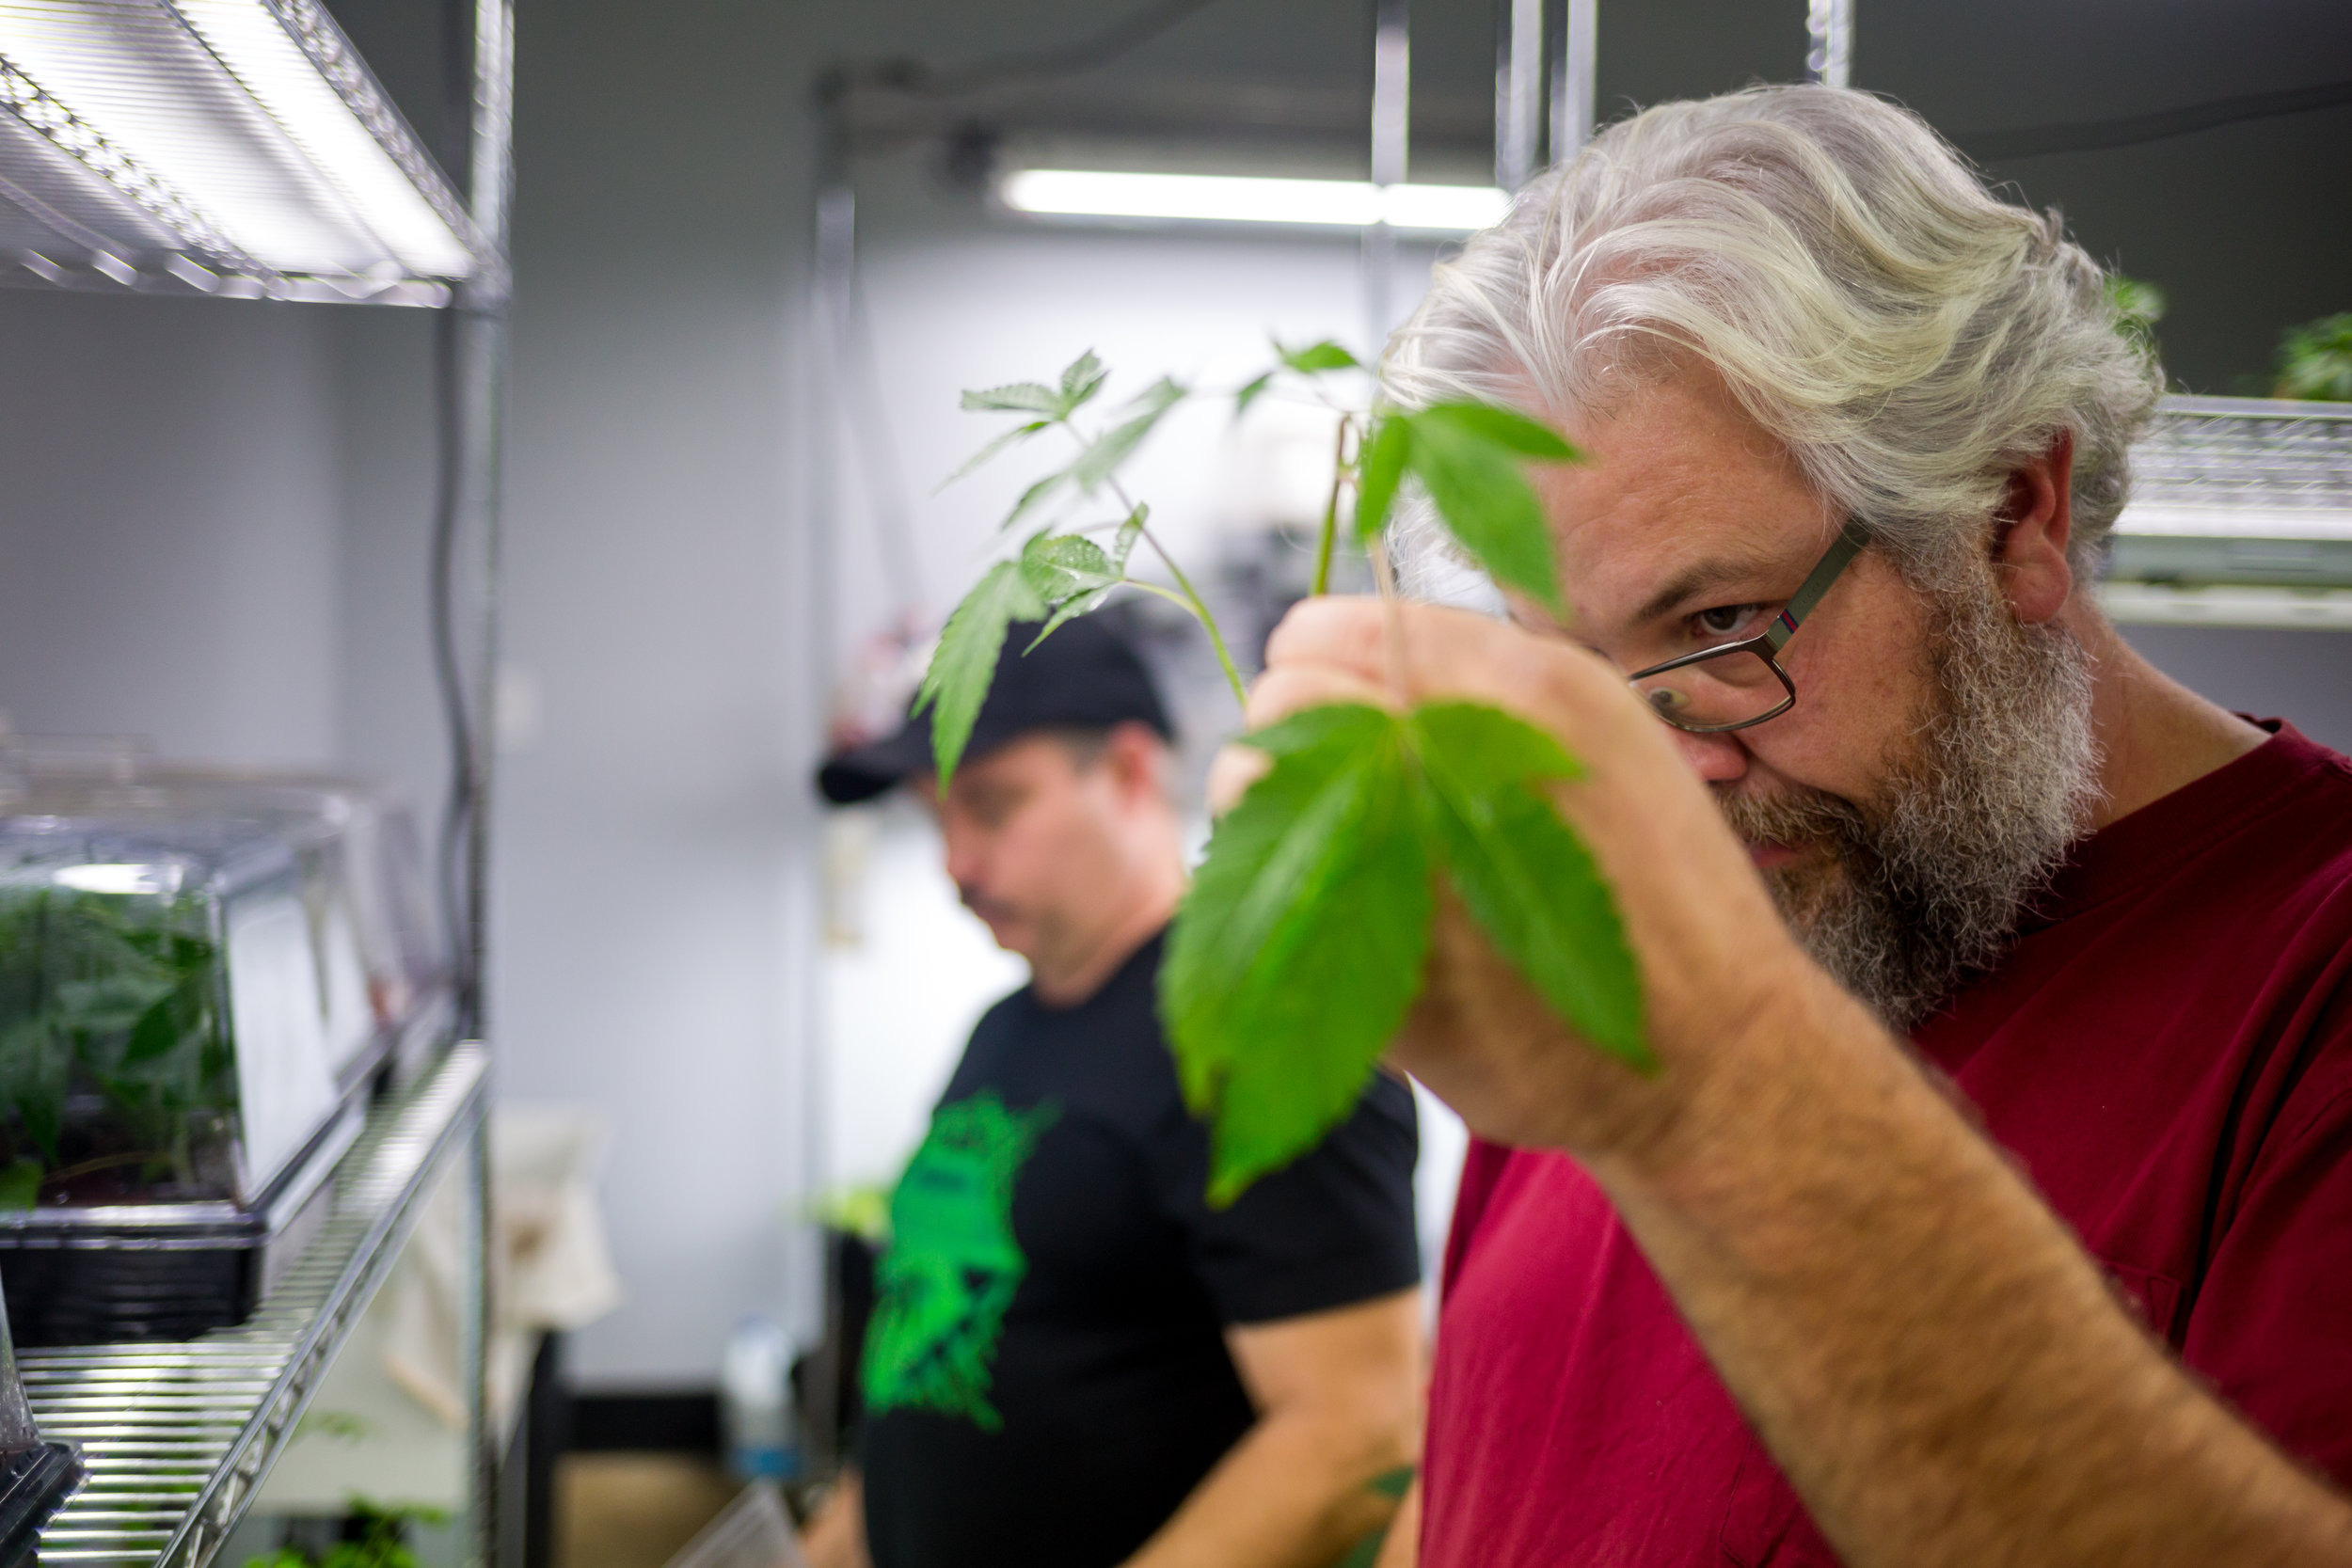 Travis Mackenzie examines the roots of a cannabis clone in one of the 24 growing rooms located in their west-Eugene indoor grow facility.